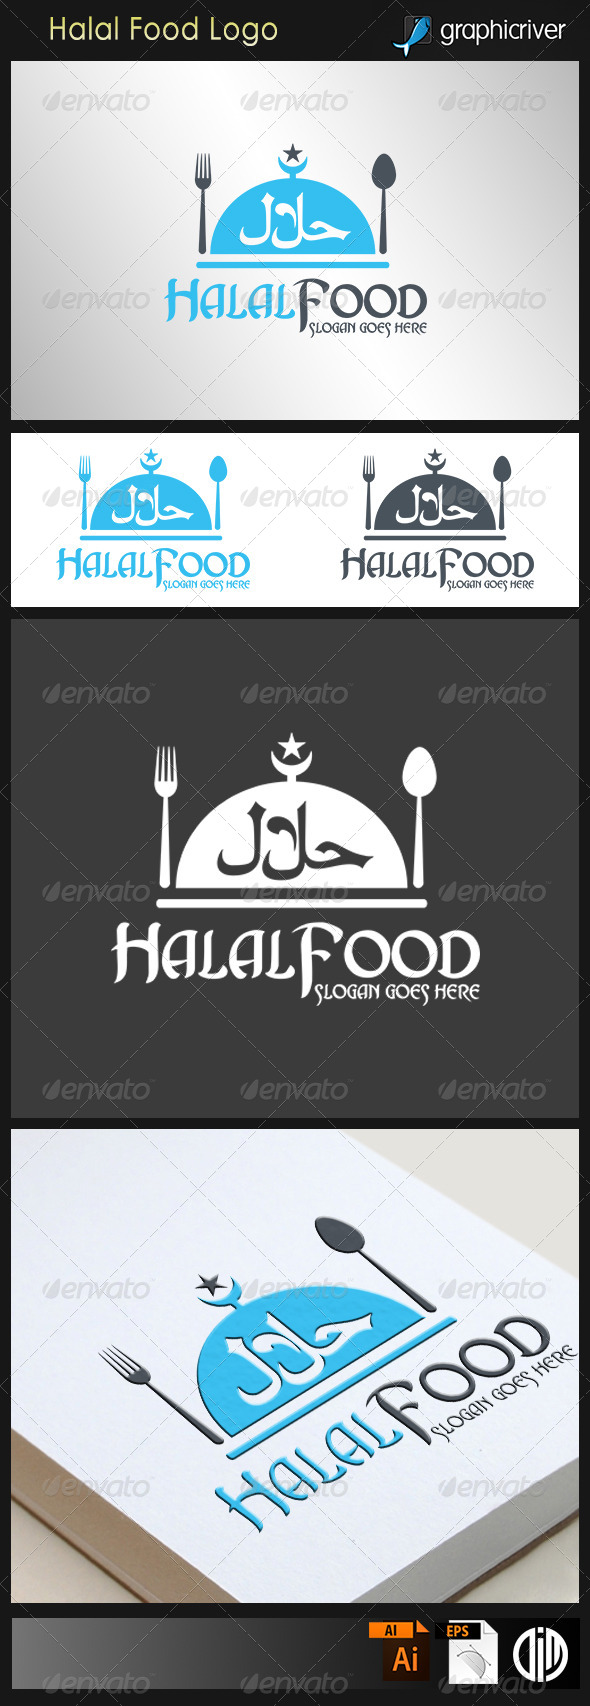 GraphicRiver Halal Food Logo 8296379